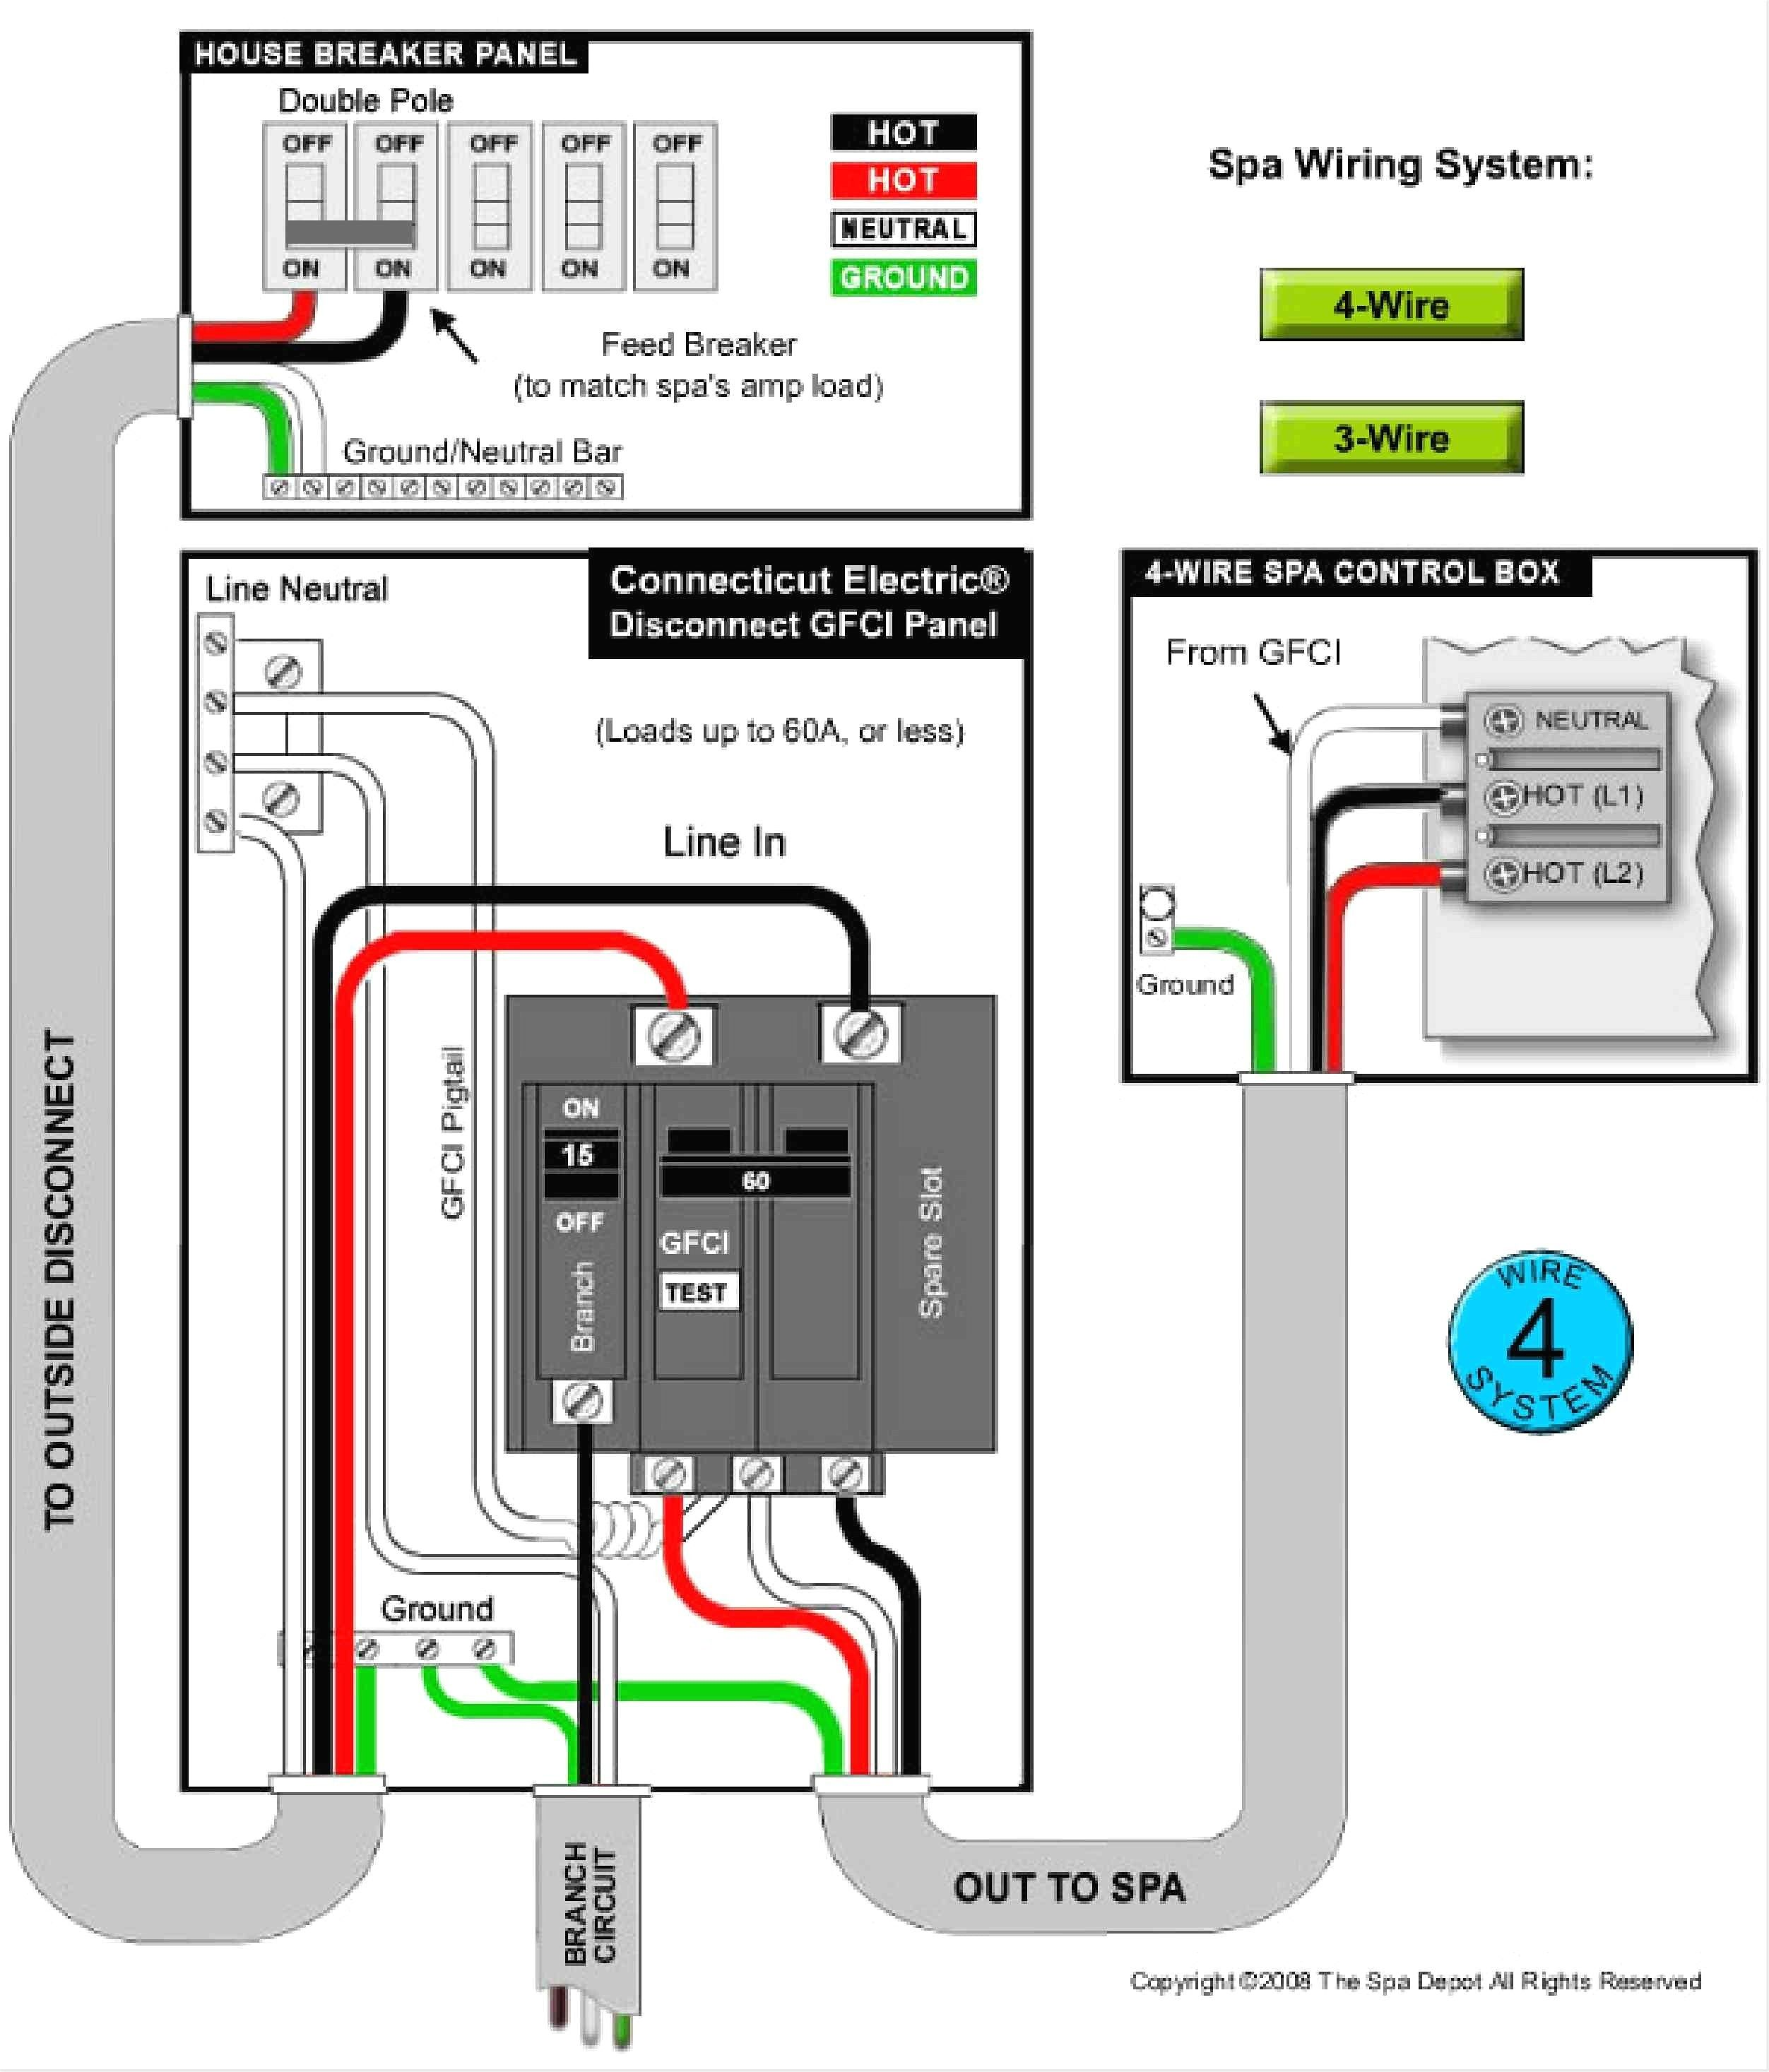 new gfci wiring diagram for hot tub diagram diagramsample Hot Springs Spa Plumbing Diagram